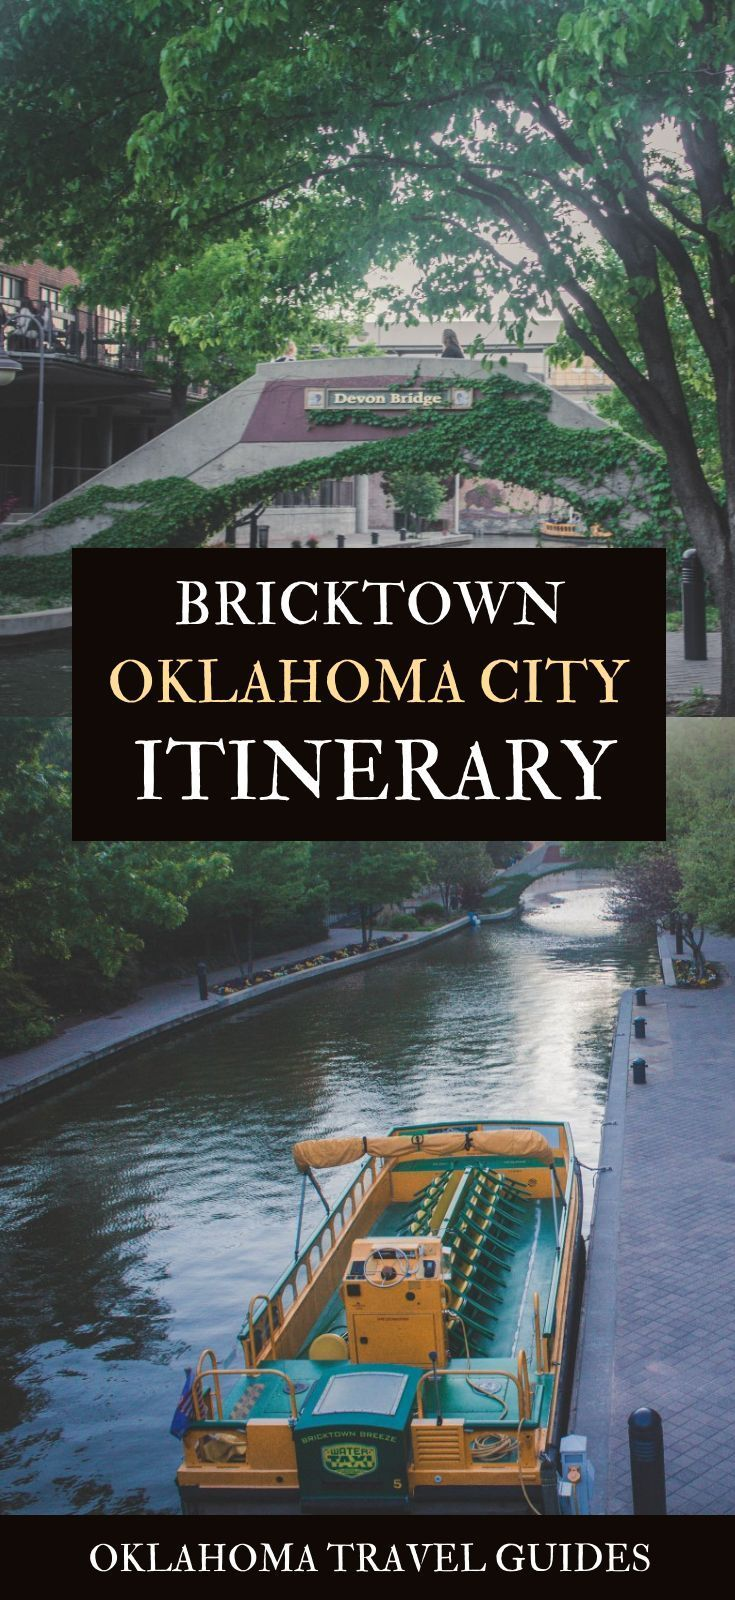 Things To See Do Around Bricktown Oklahoma City In 2020 With Images Bricktown Oklahoma City Oklahoma City Oklahoma